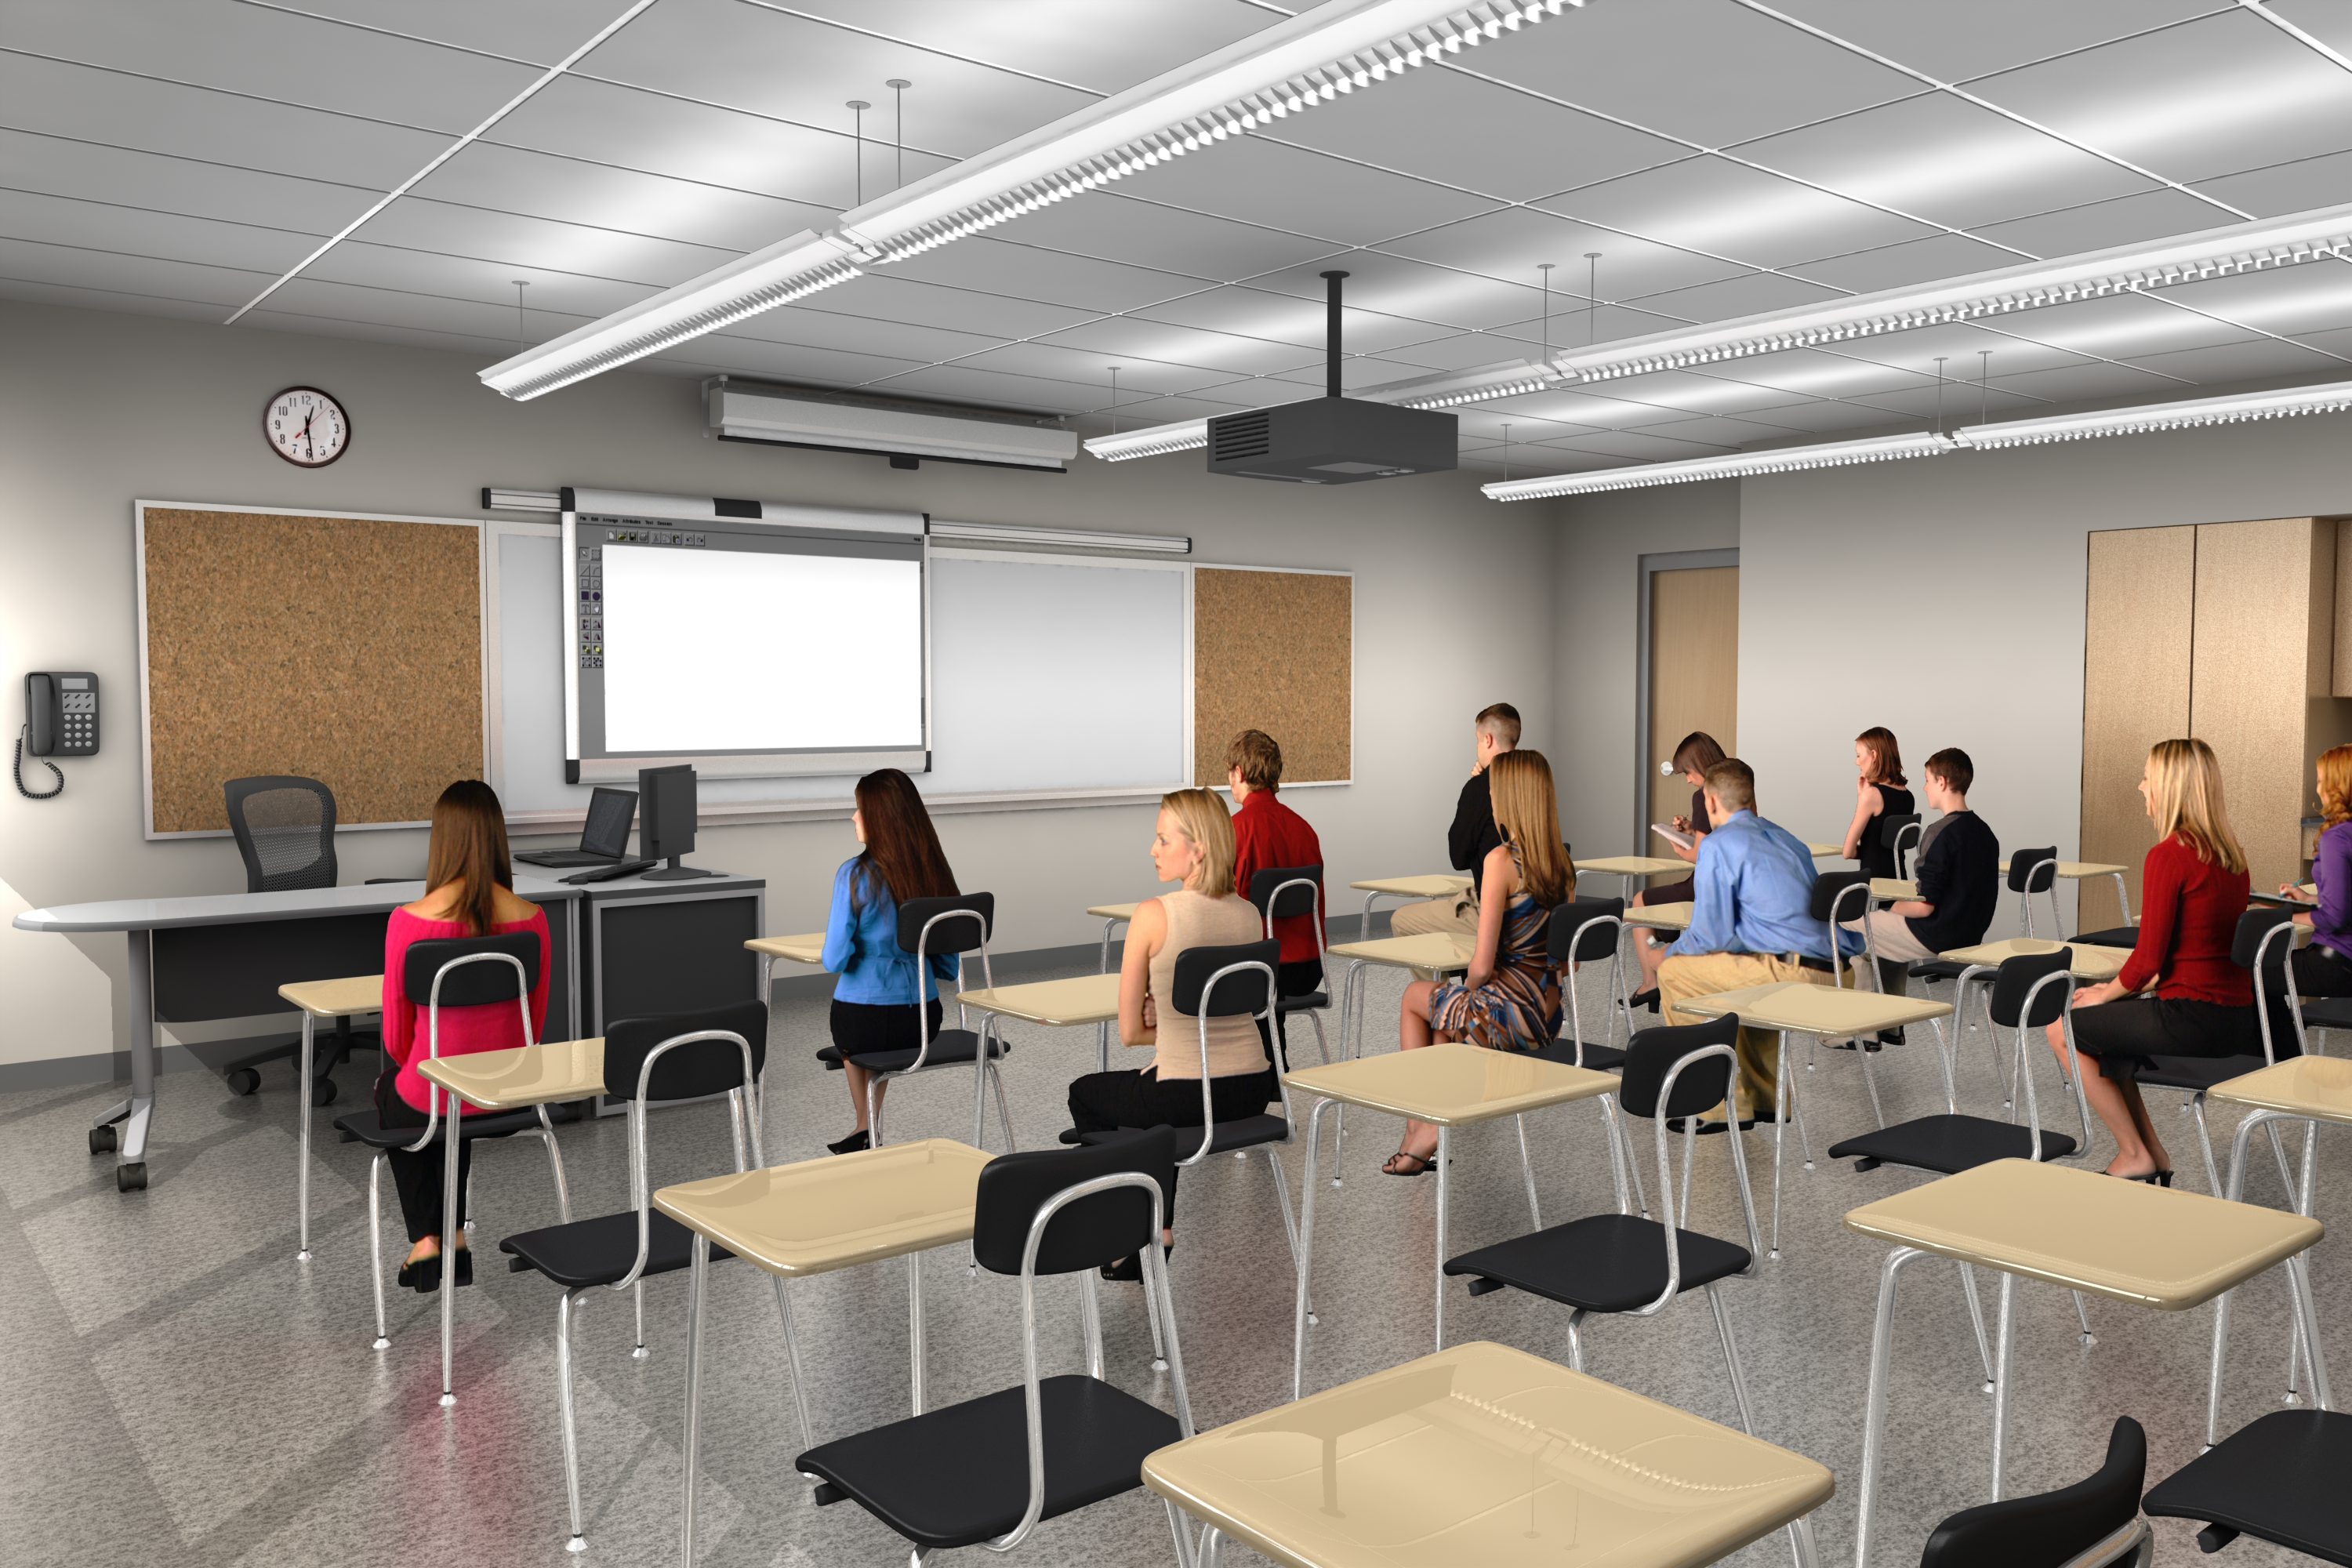 Modern School Classroom ~ Nhs renovation project to overhaul education too citizen